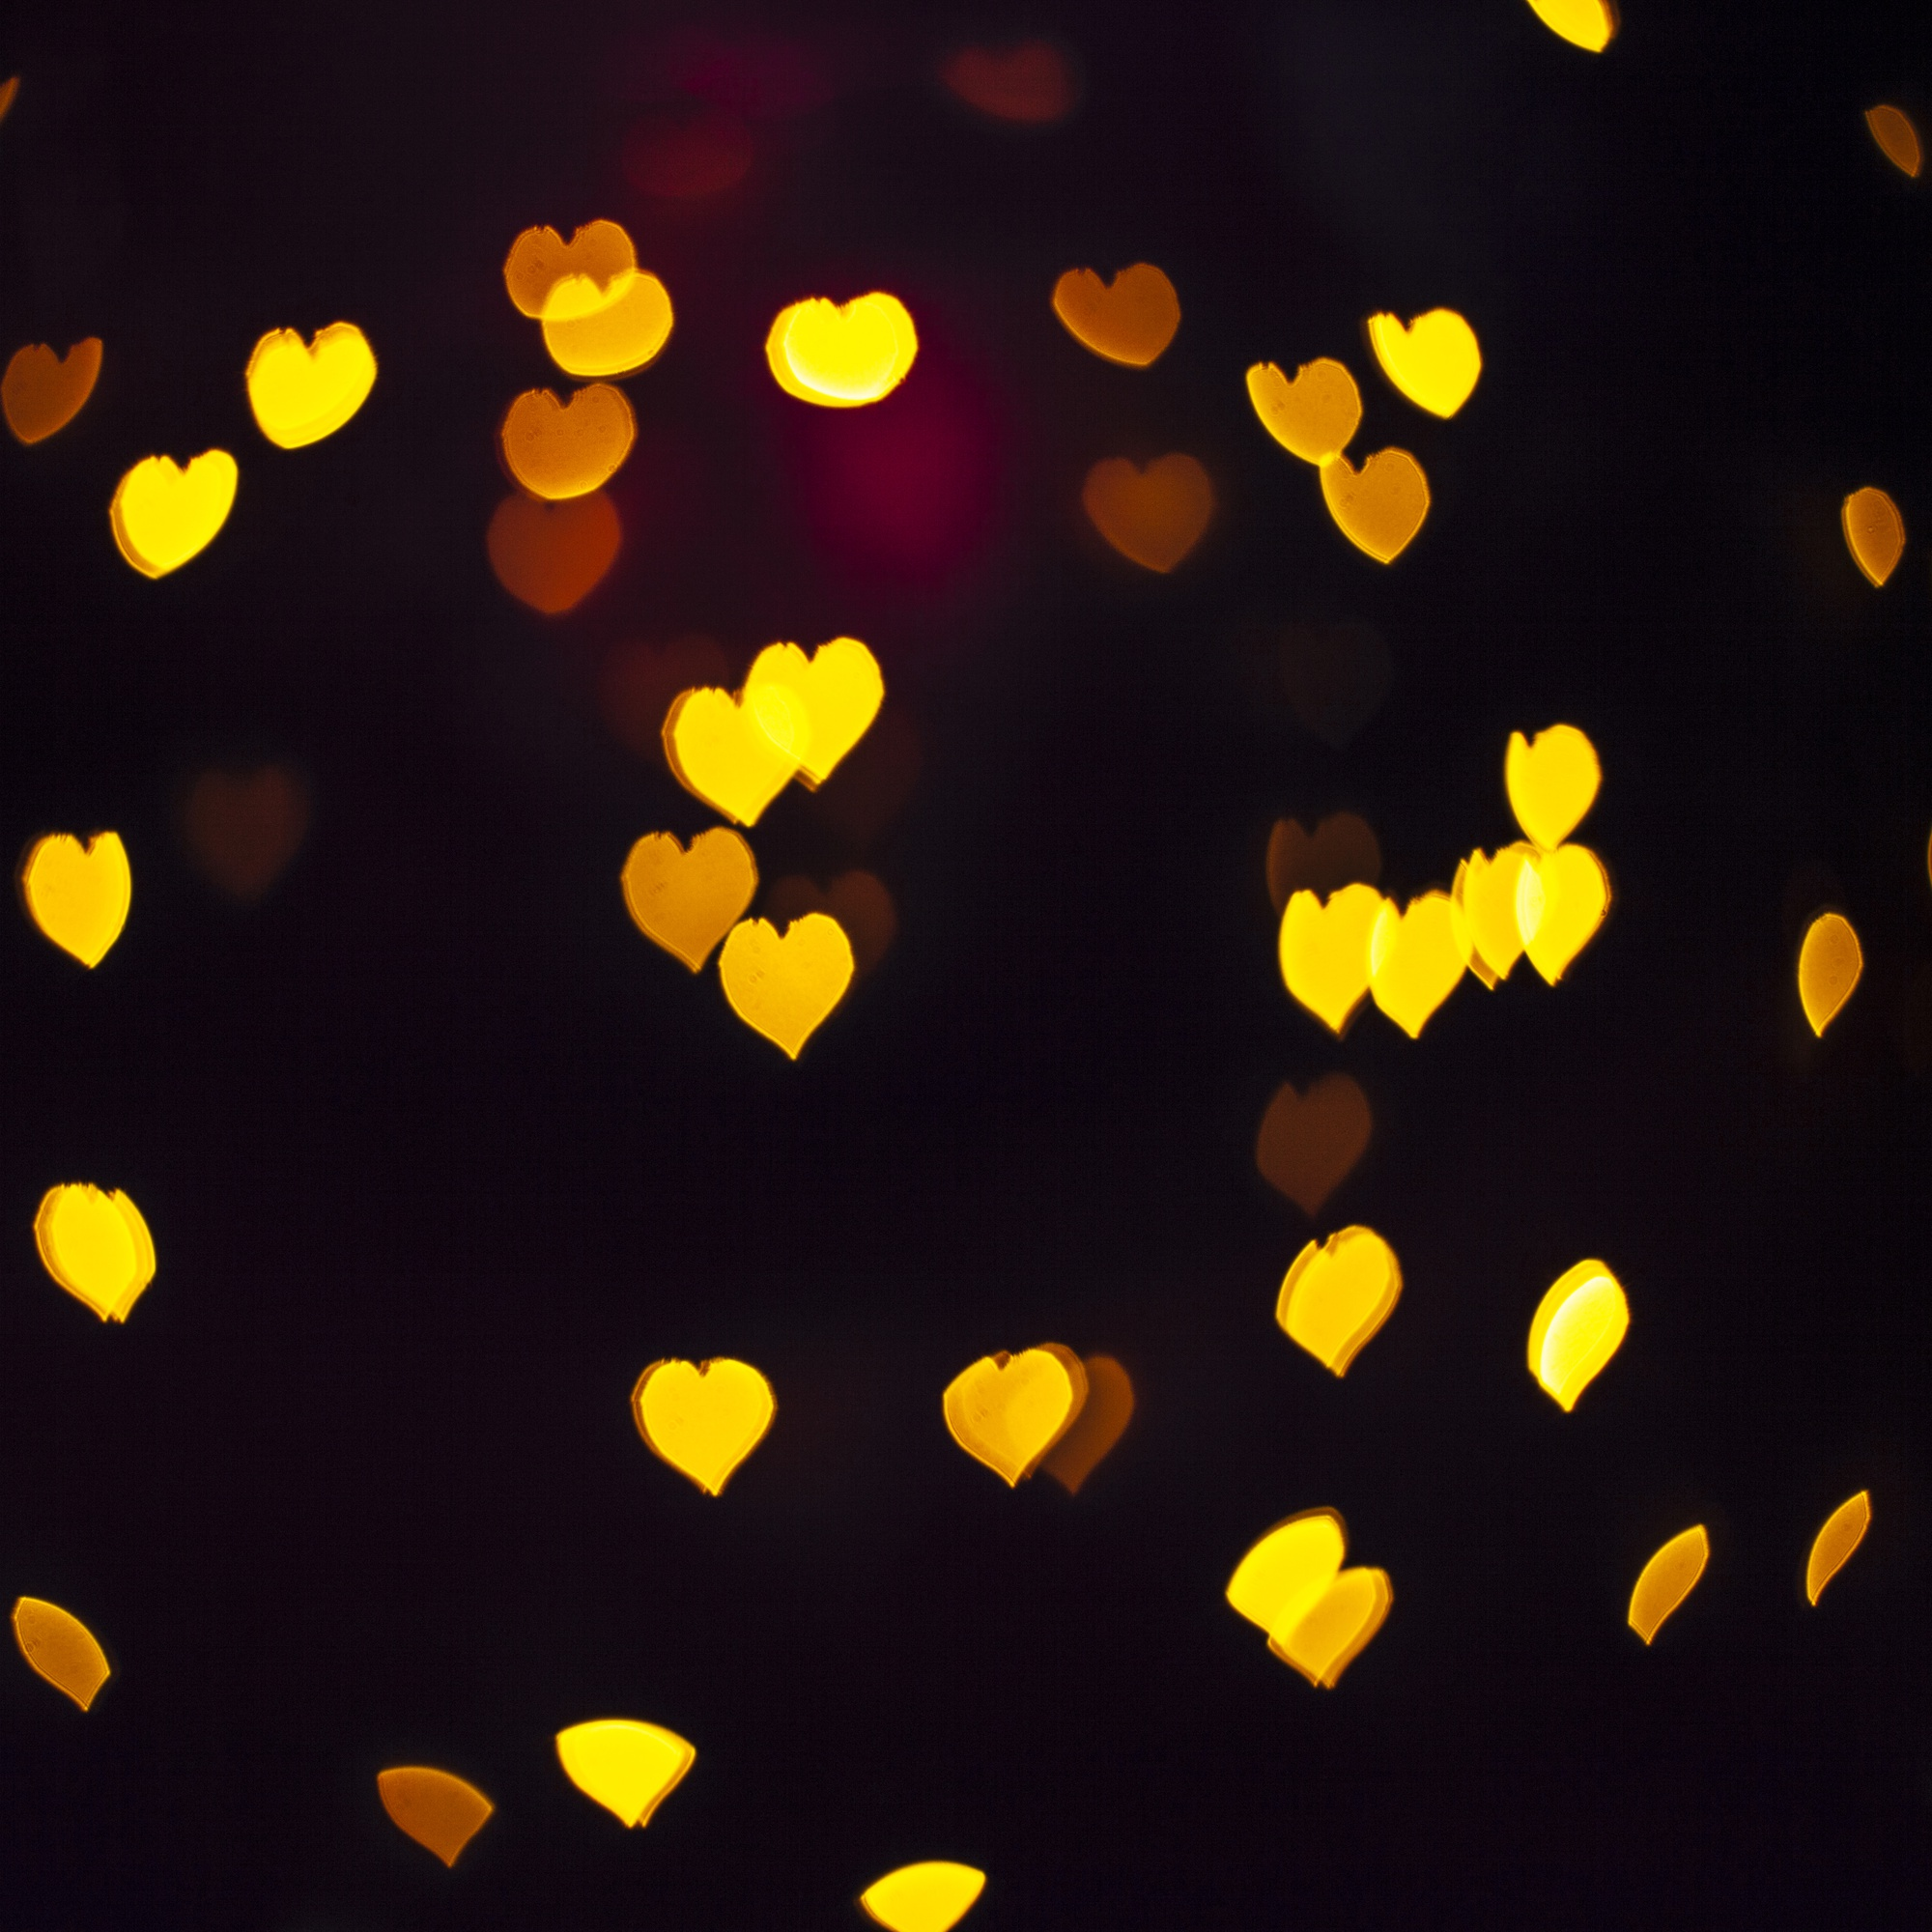 Close-up shiny yellow hearts